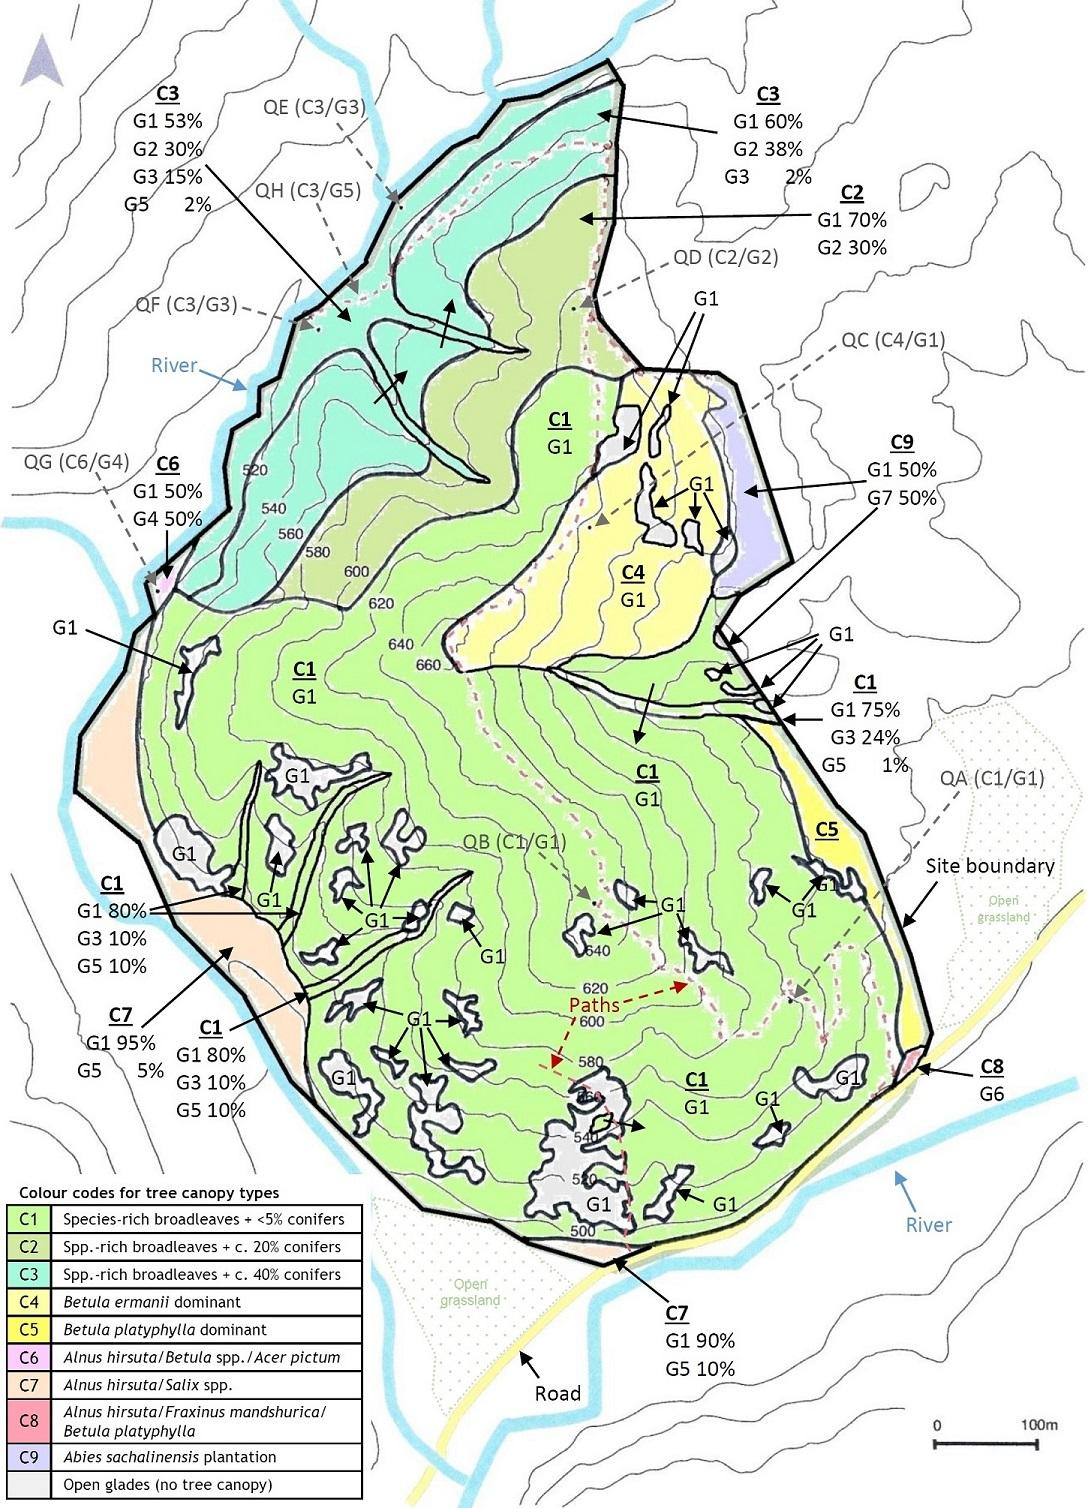 http://www.horoka.org/maps/htmfsurvey3map1.jpg